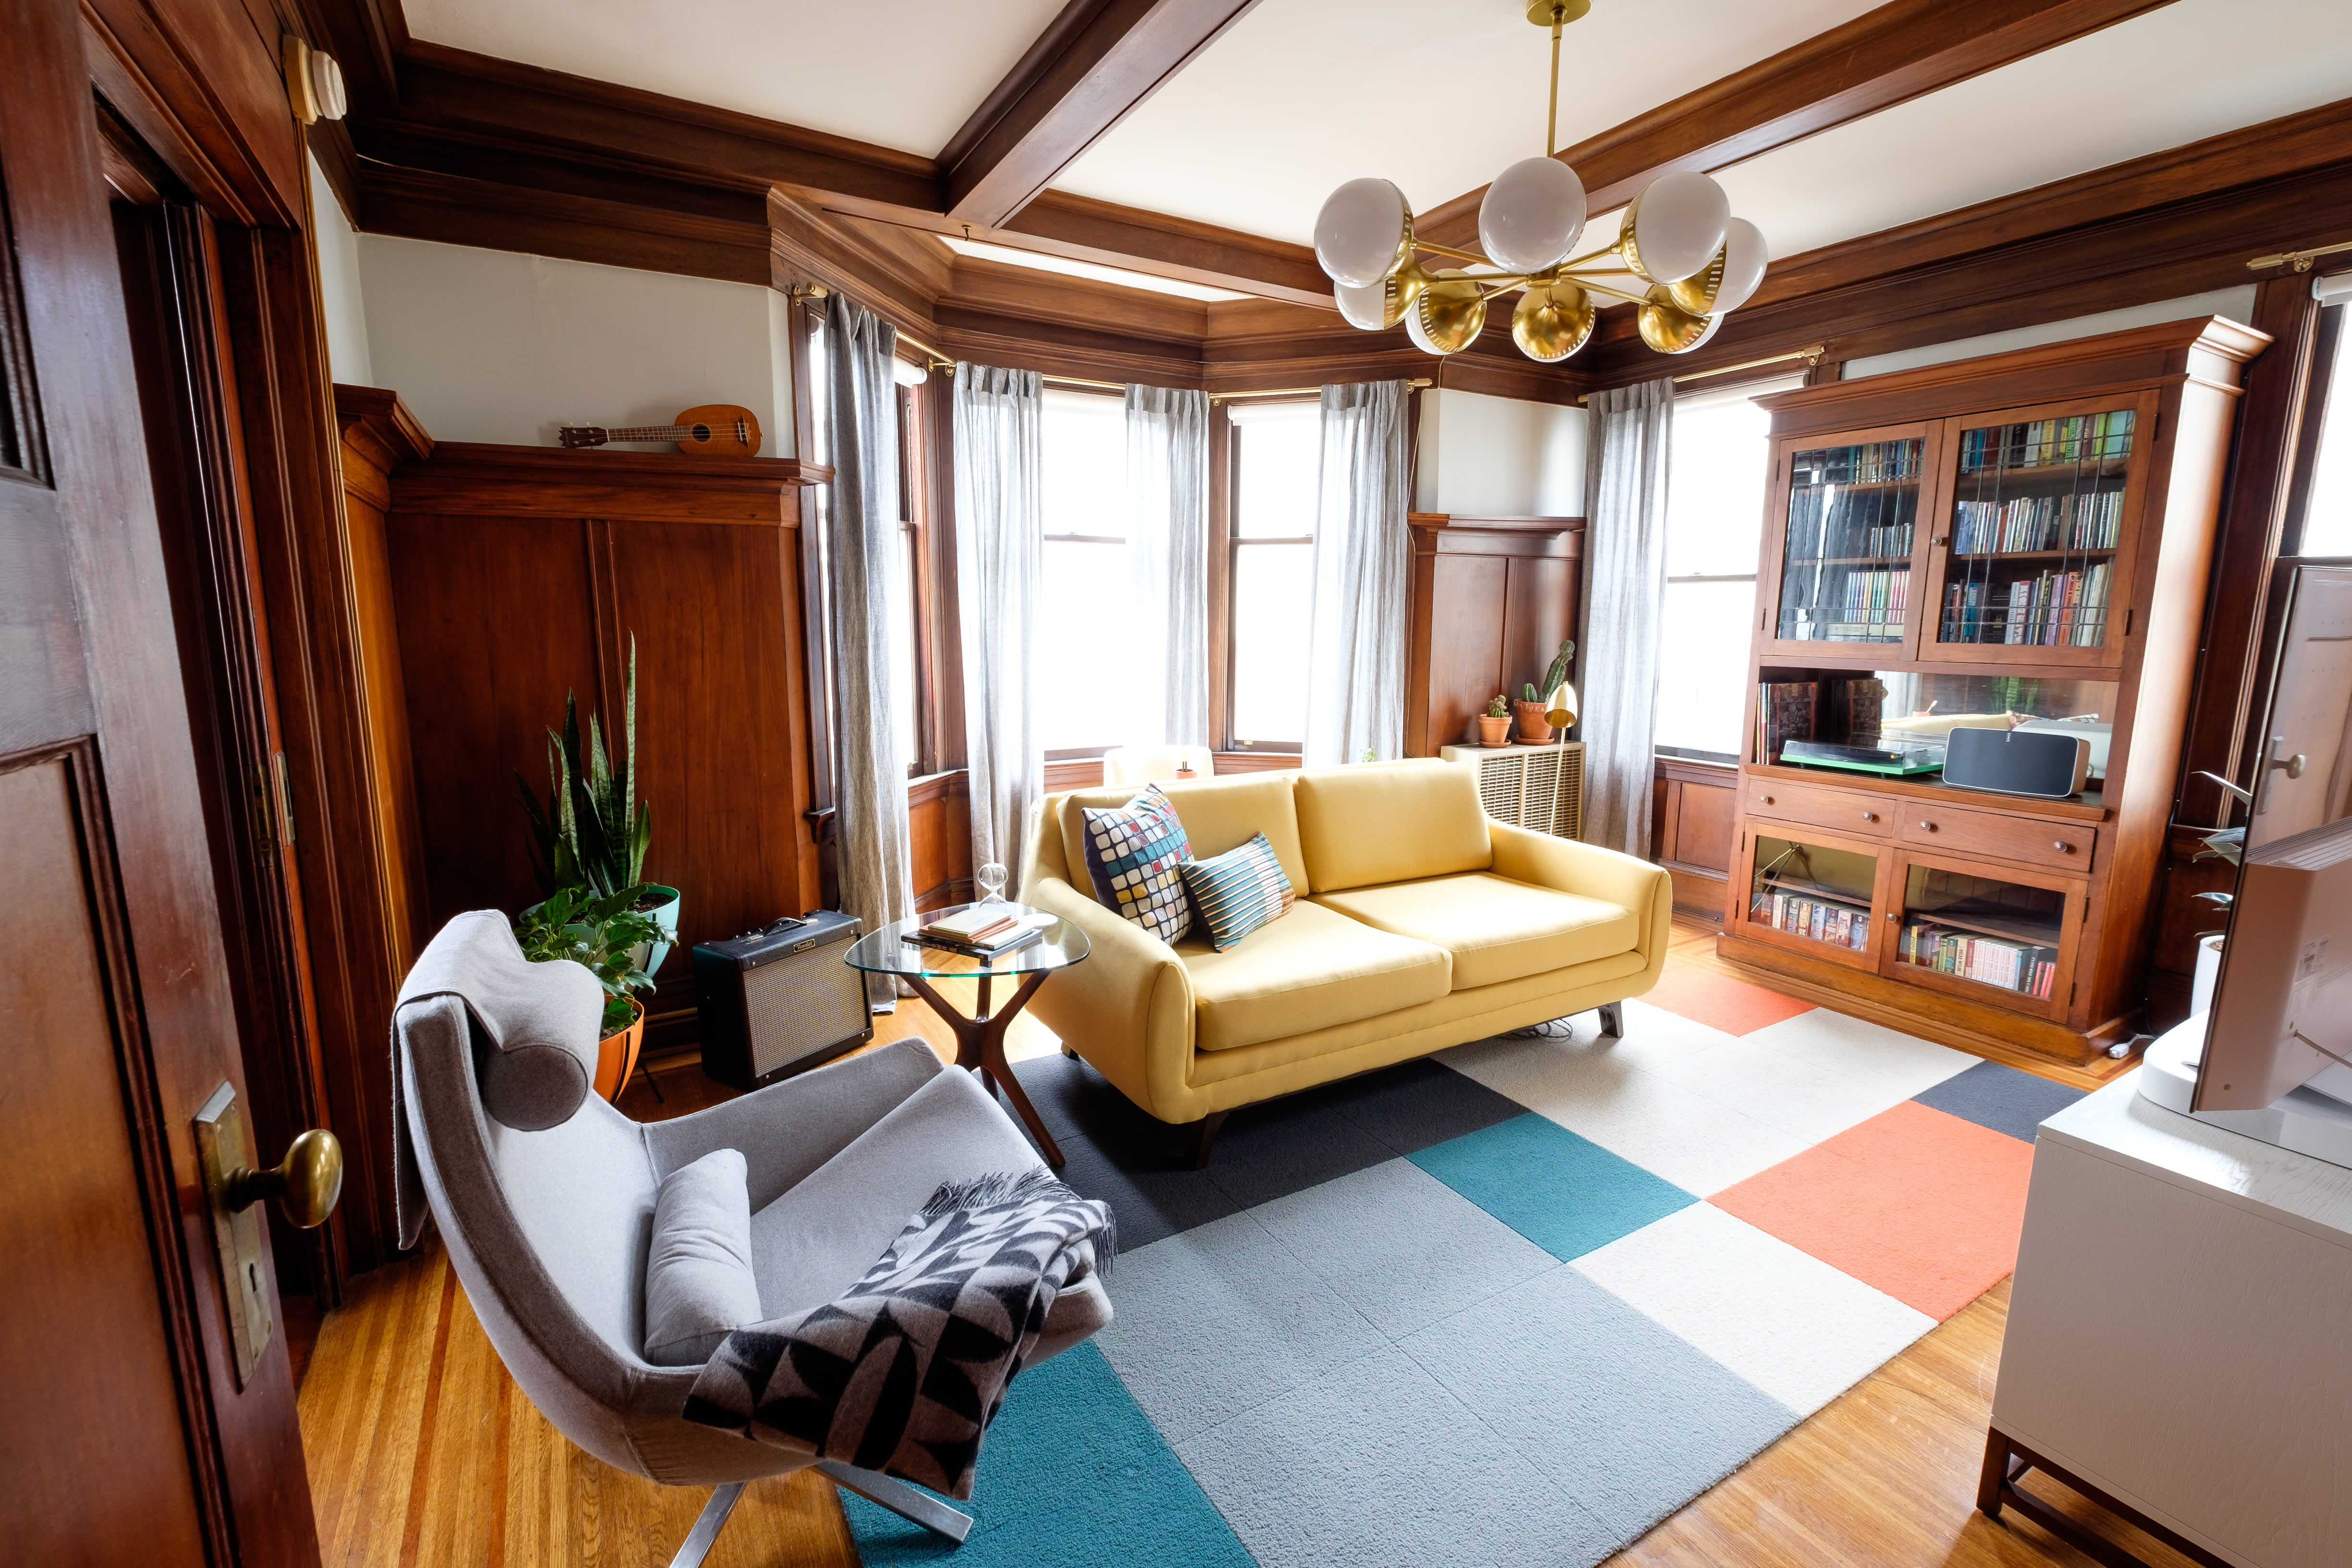 A Small San Francisco Rental Apartment Is Full of Warmth ...